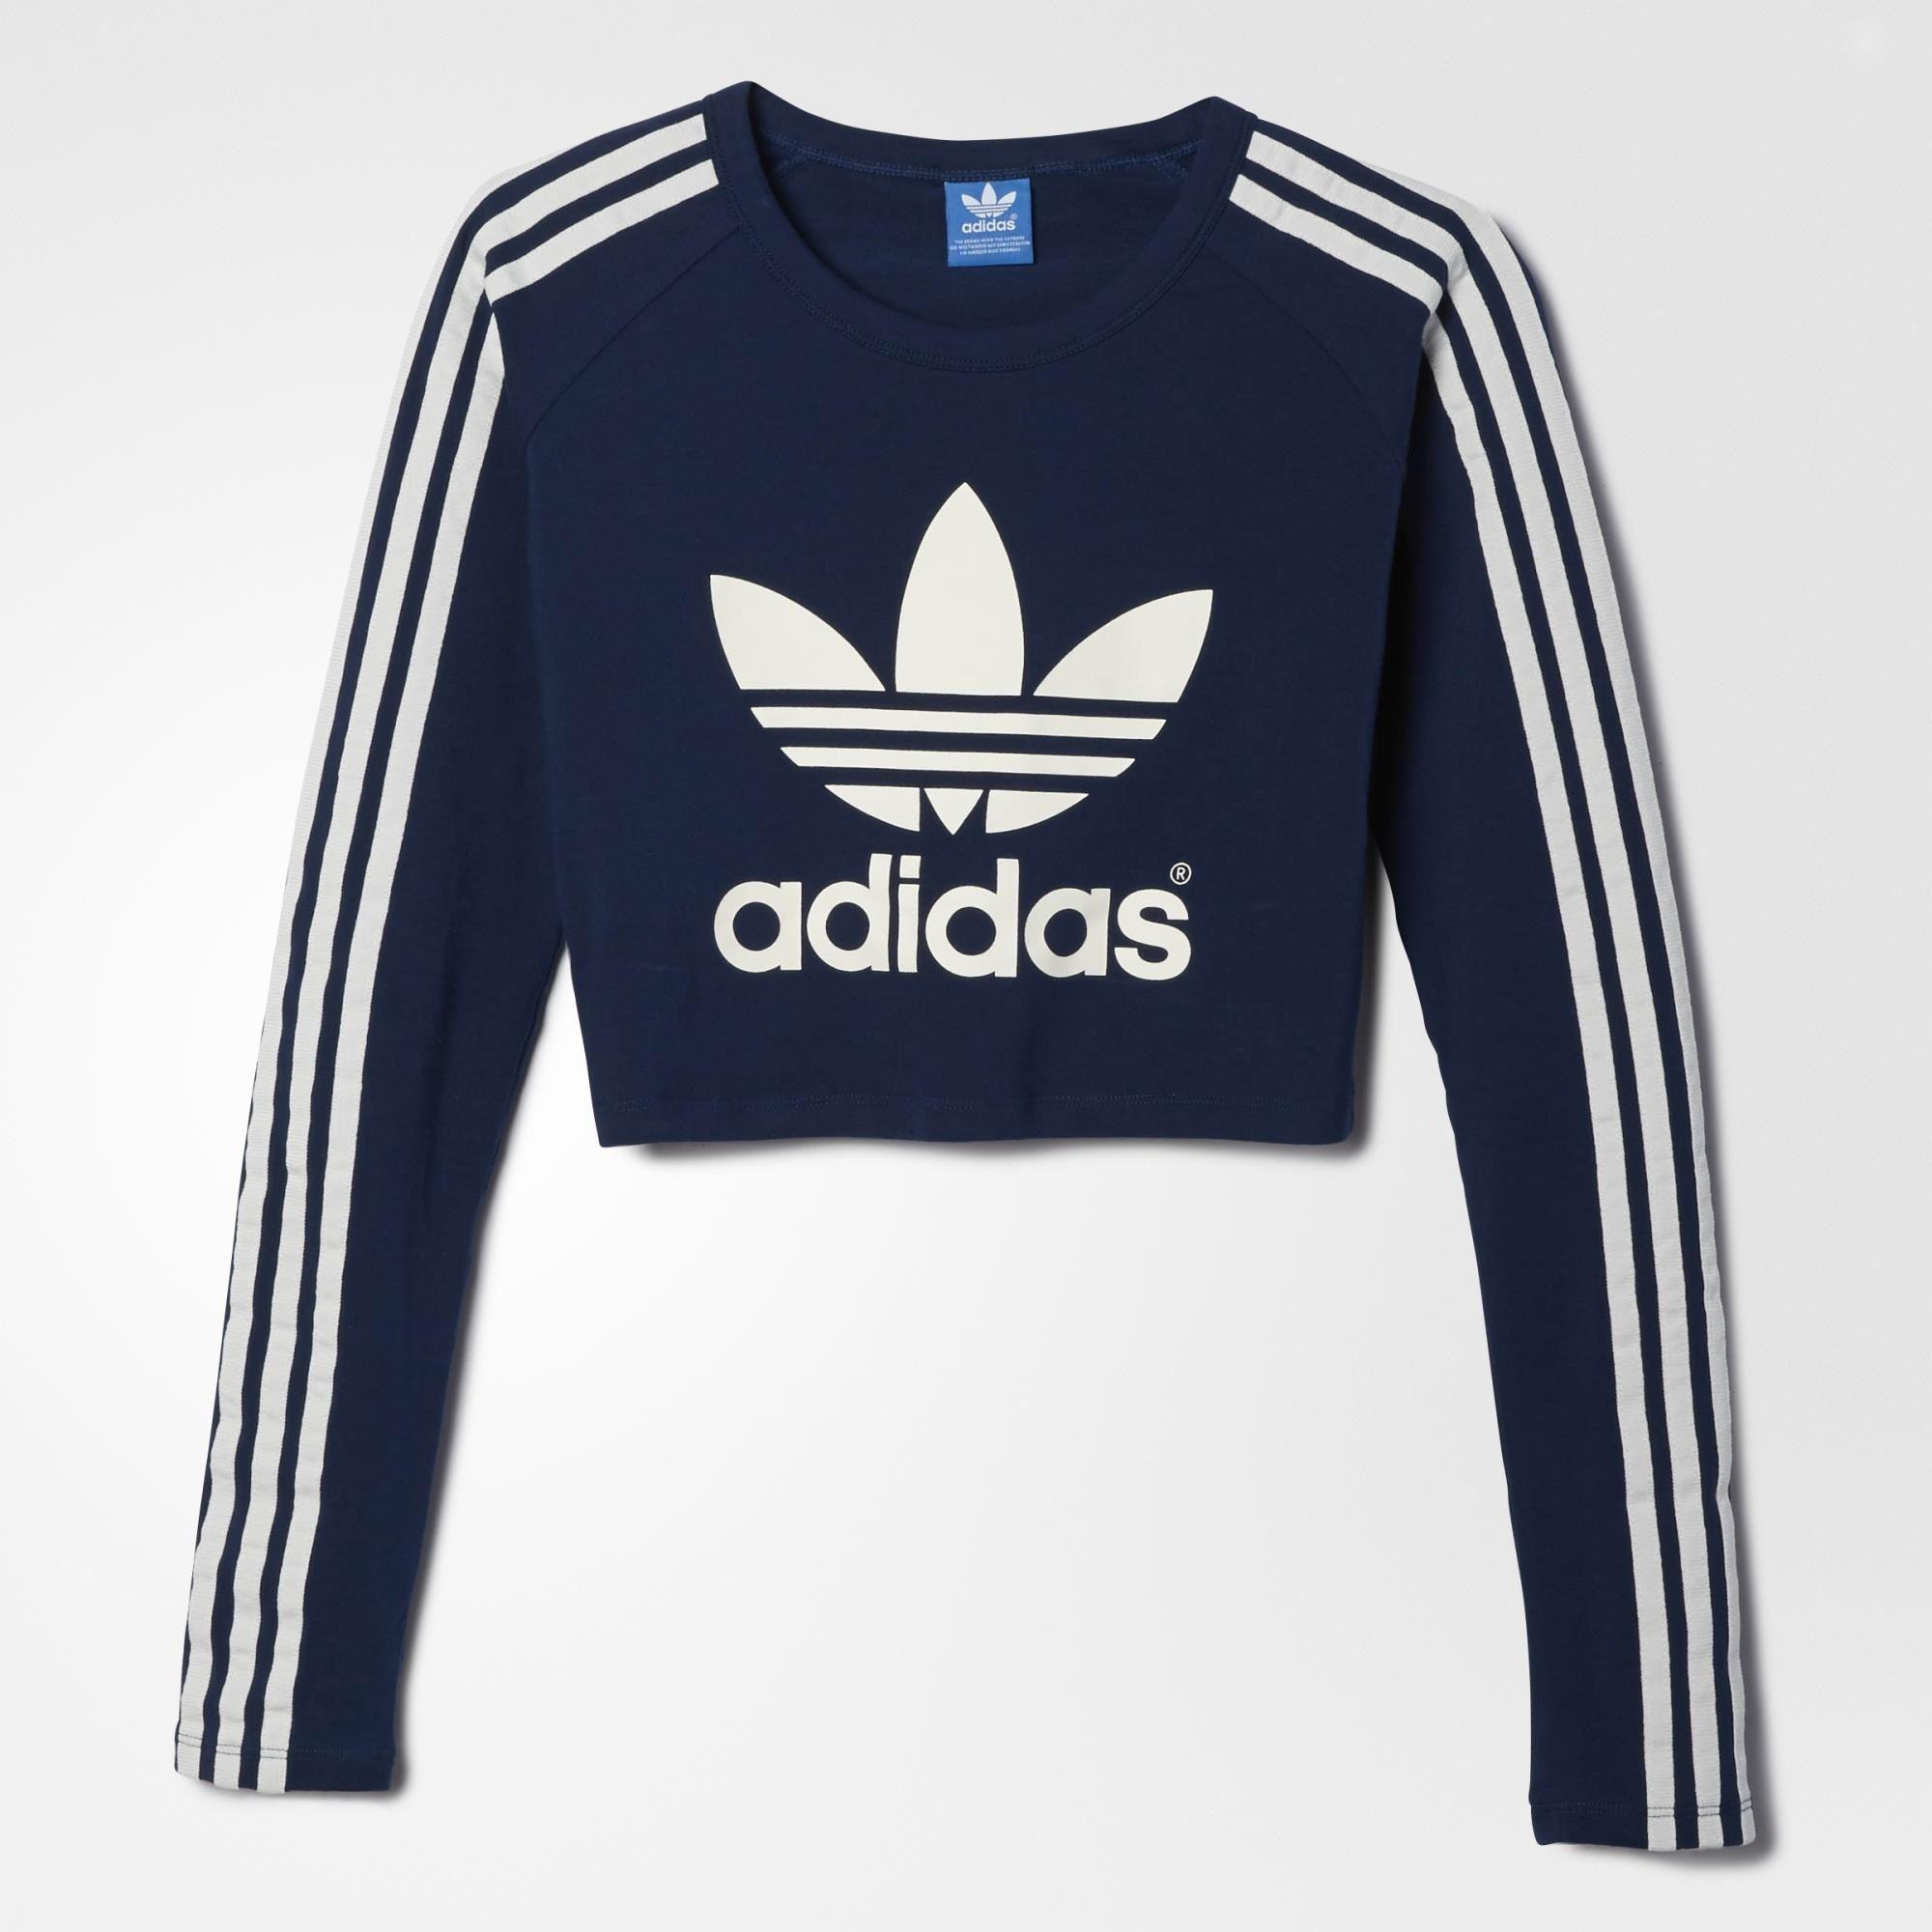 adidas Paris Crop Tee - Blue | adidas US from adidas